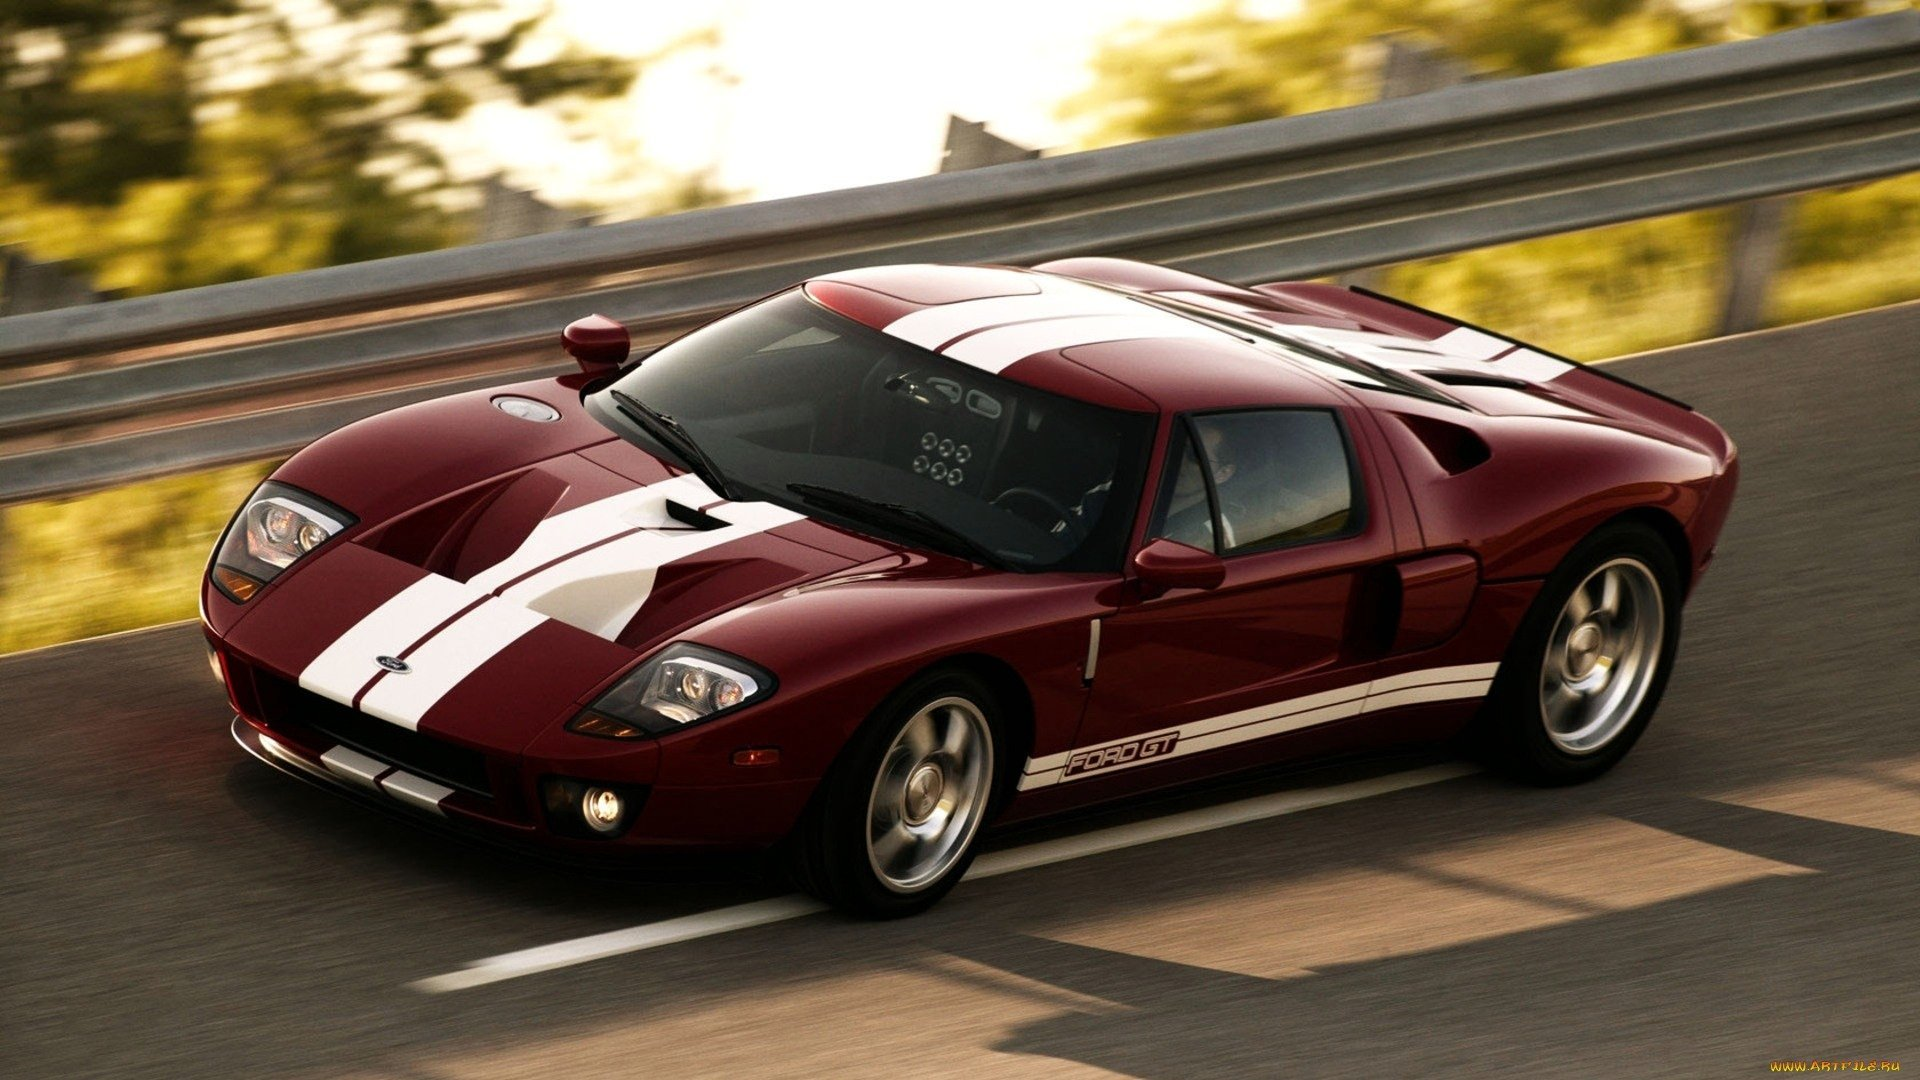 1 2005 Ford Gt Hd Wallpapers Background Images Wallpaper Abyss